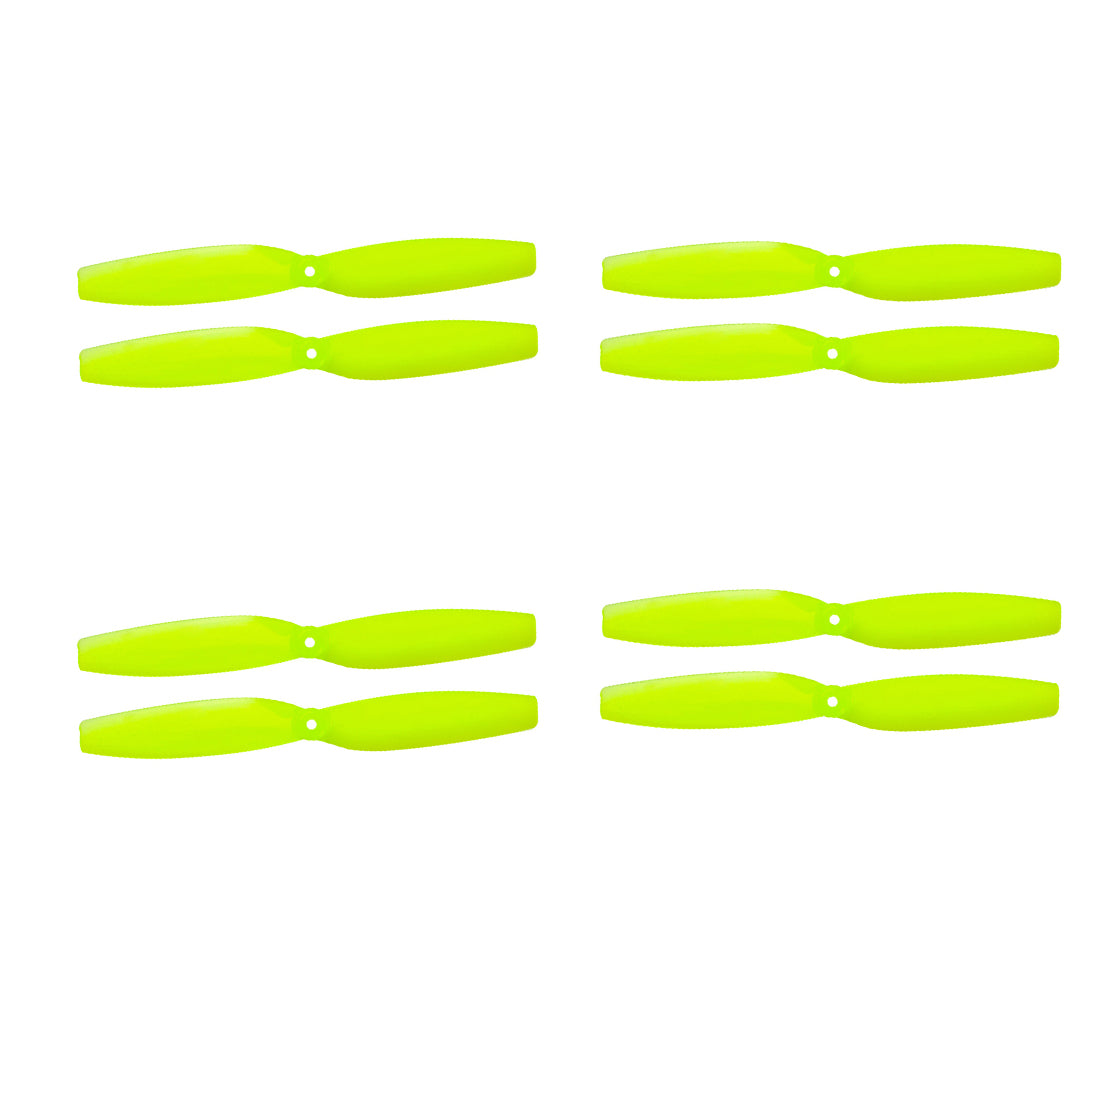 Gemfan Mini 65mm Props ABS 2-Blade Propeller CW CCW 1.5mm Hole for RC Drone FPV Racing 0802-1105 Brushless Motor